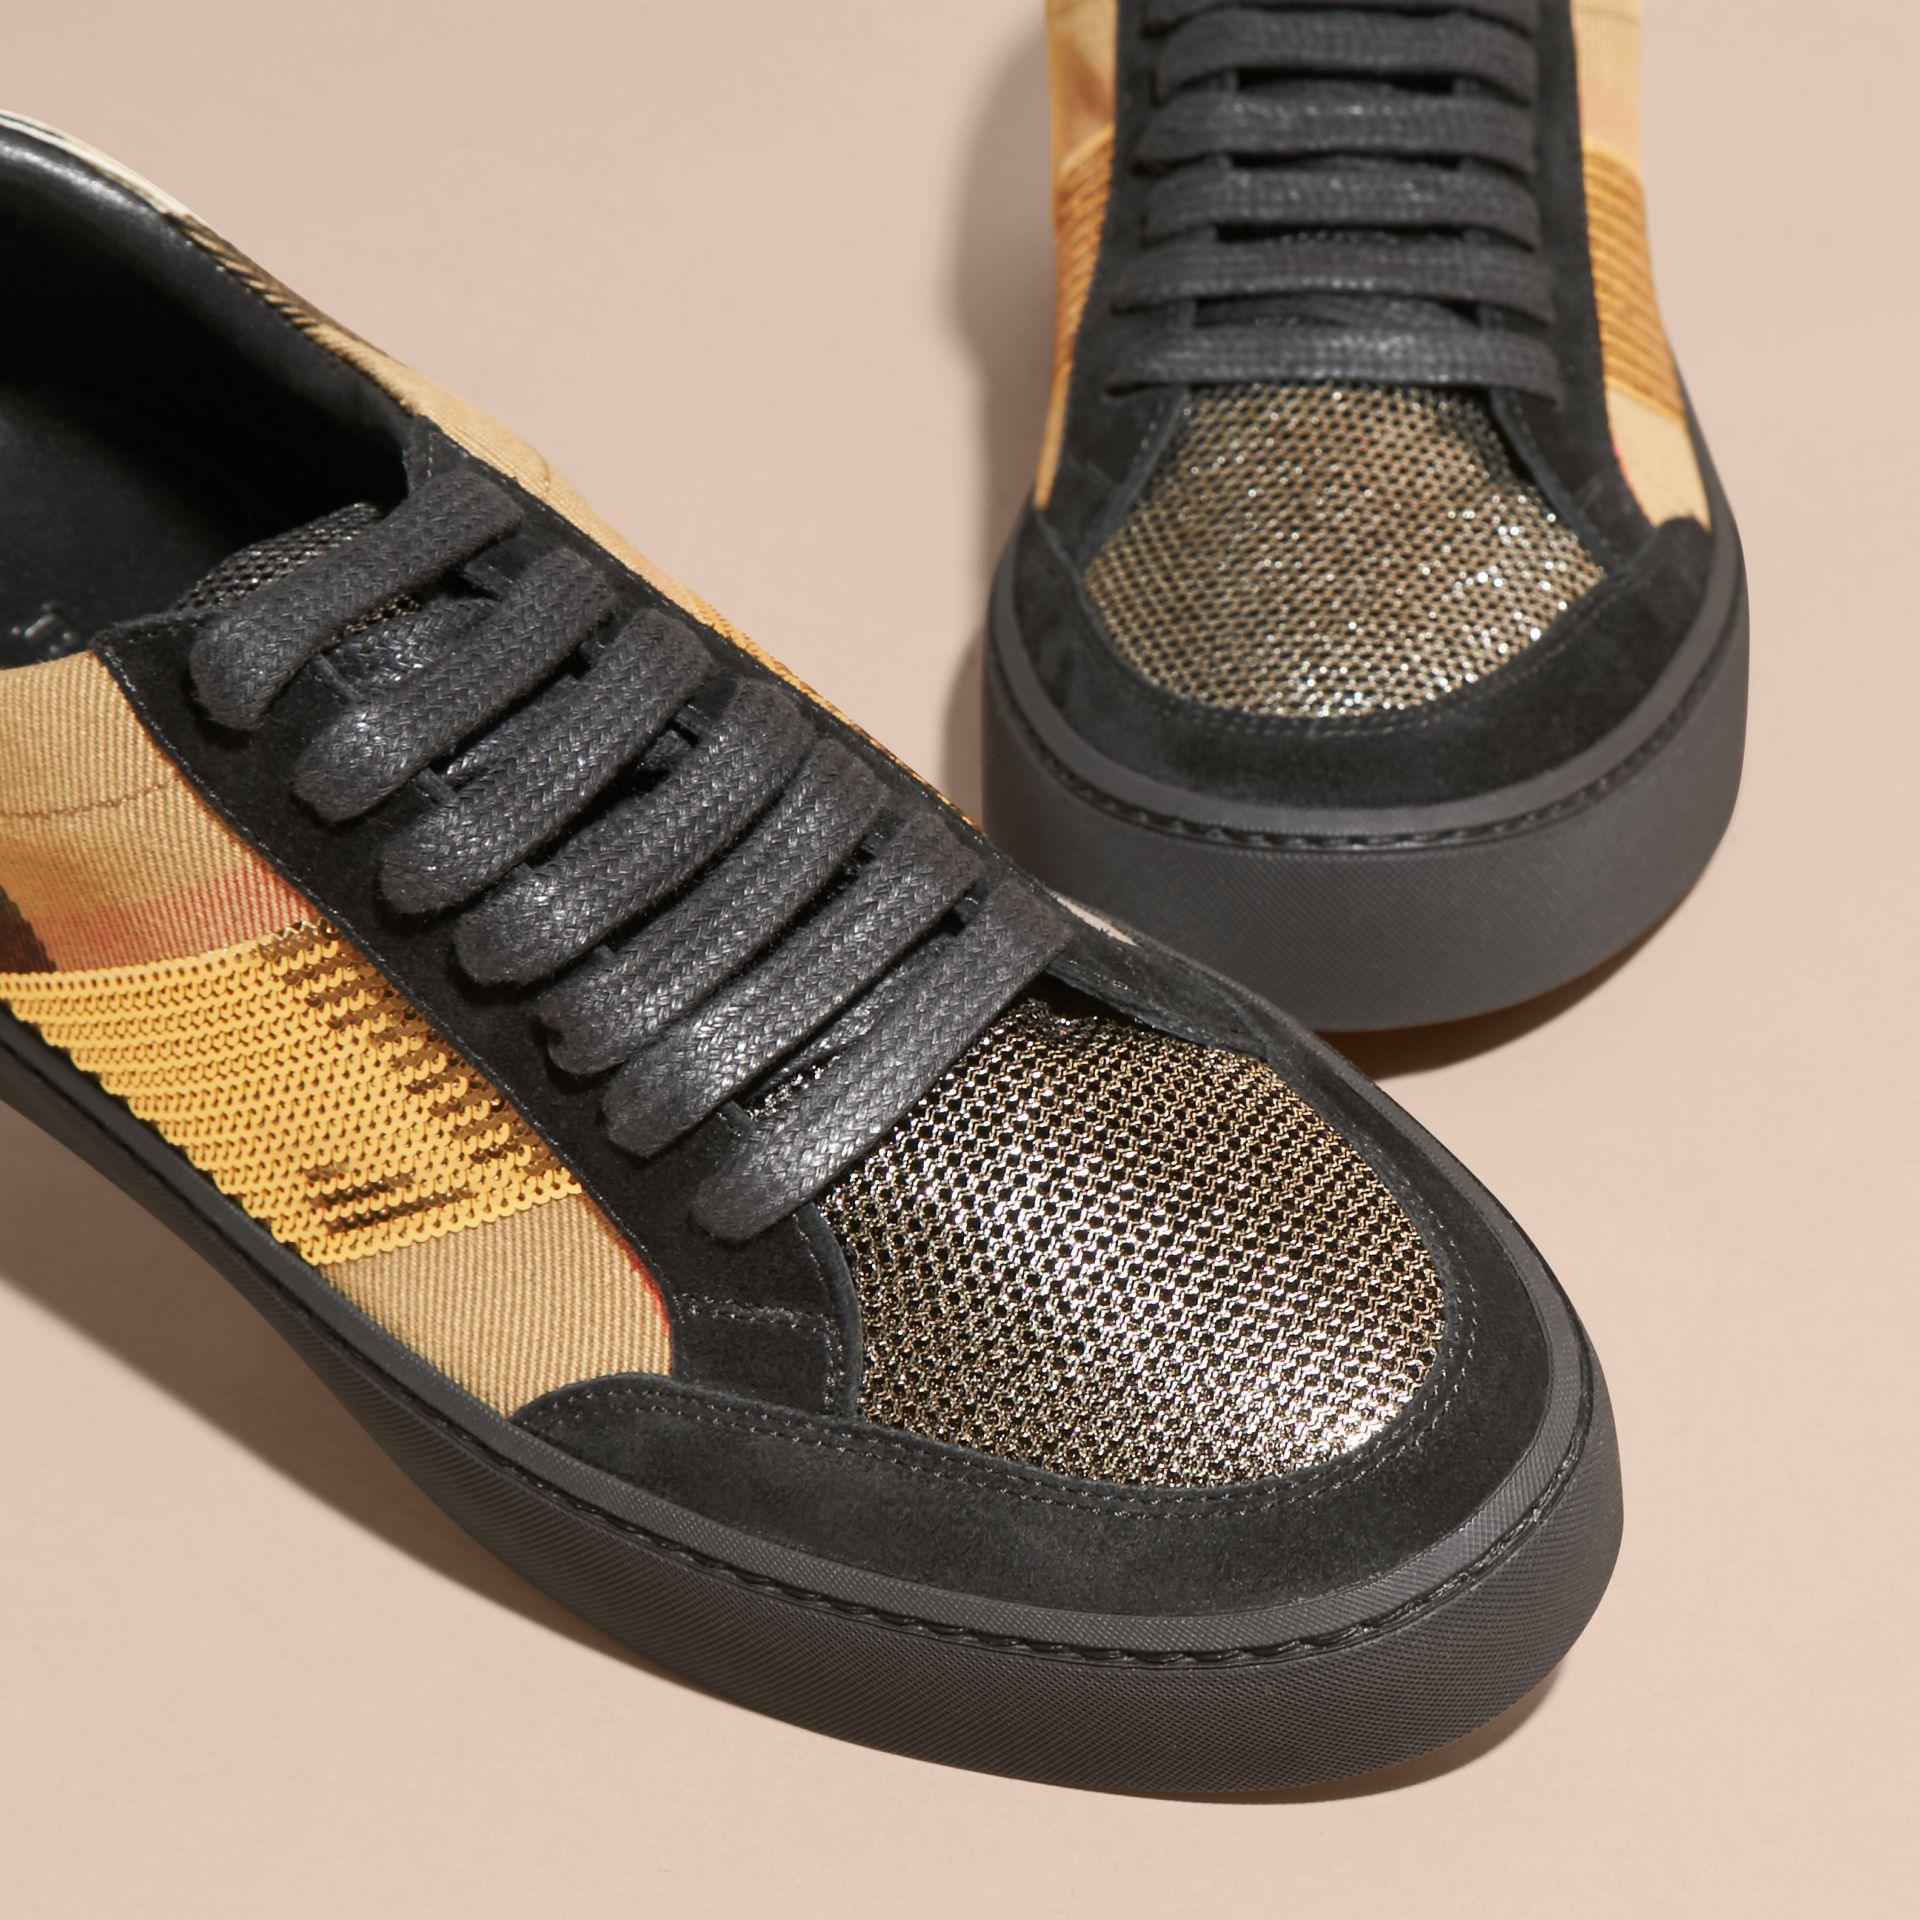 House check/gold House Check, Sequin and Leather Sneakers Check/gold - gallery image 3